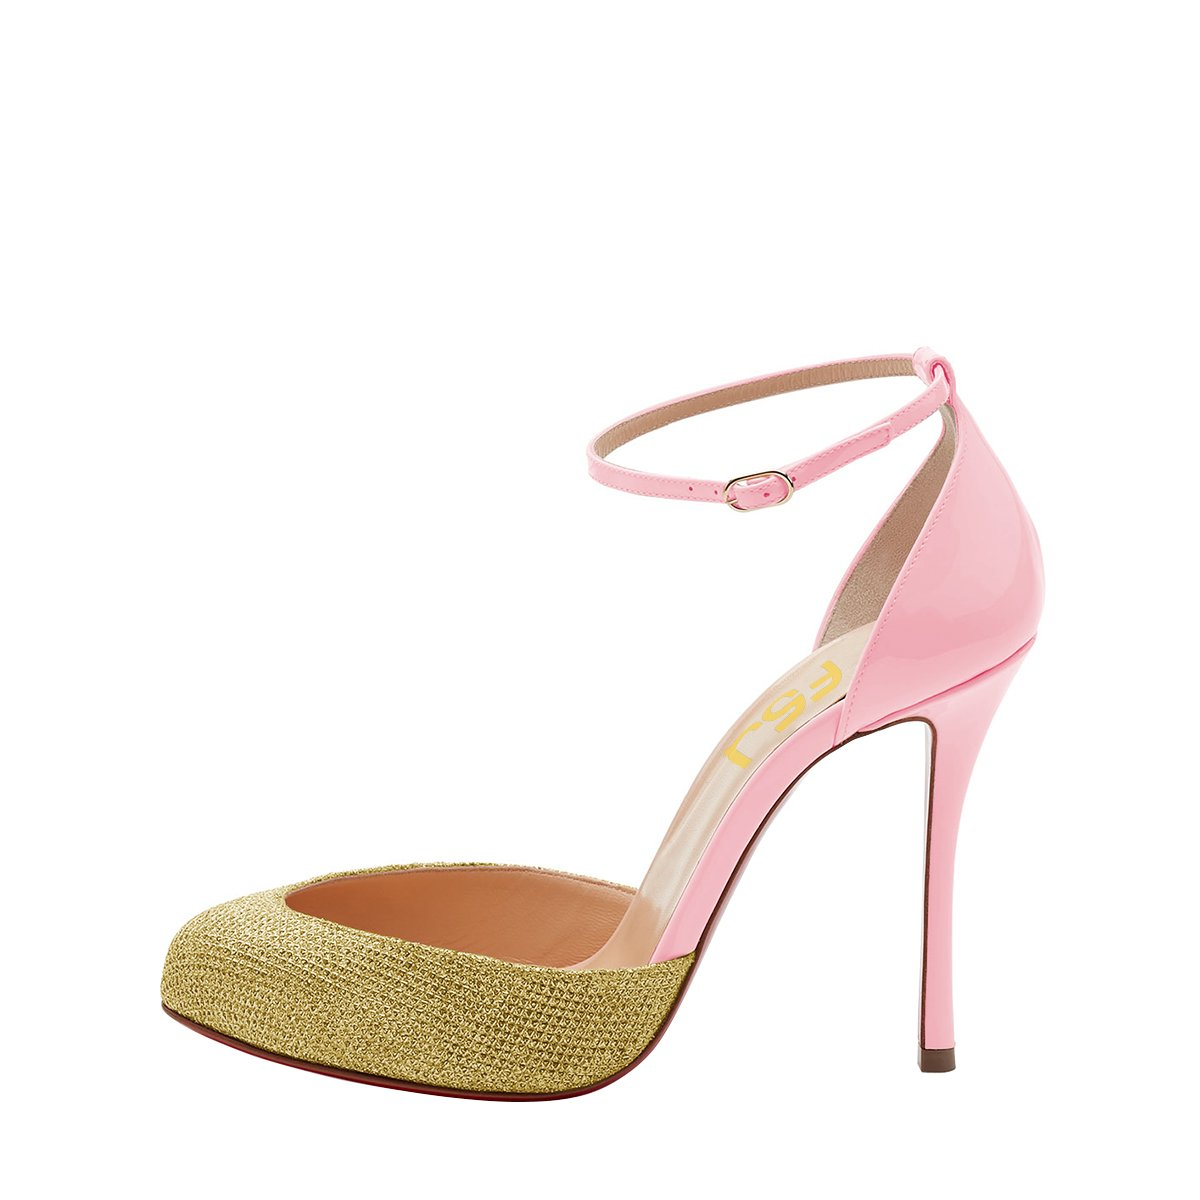 FSJ Women Fashion Almond Toe Ankle Heels Strap D'Orsay Pumps High Heels Ankle Party Prom Sandals Size 4-15 US B0781W2P7R 13 B(M) US|Pink 1d7805